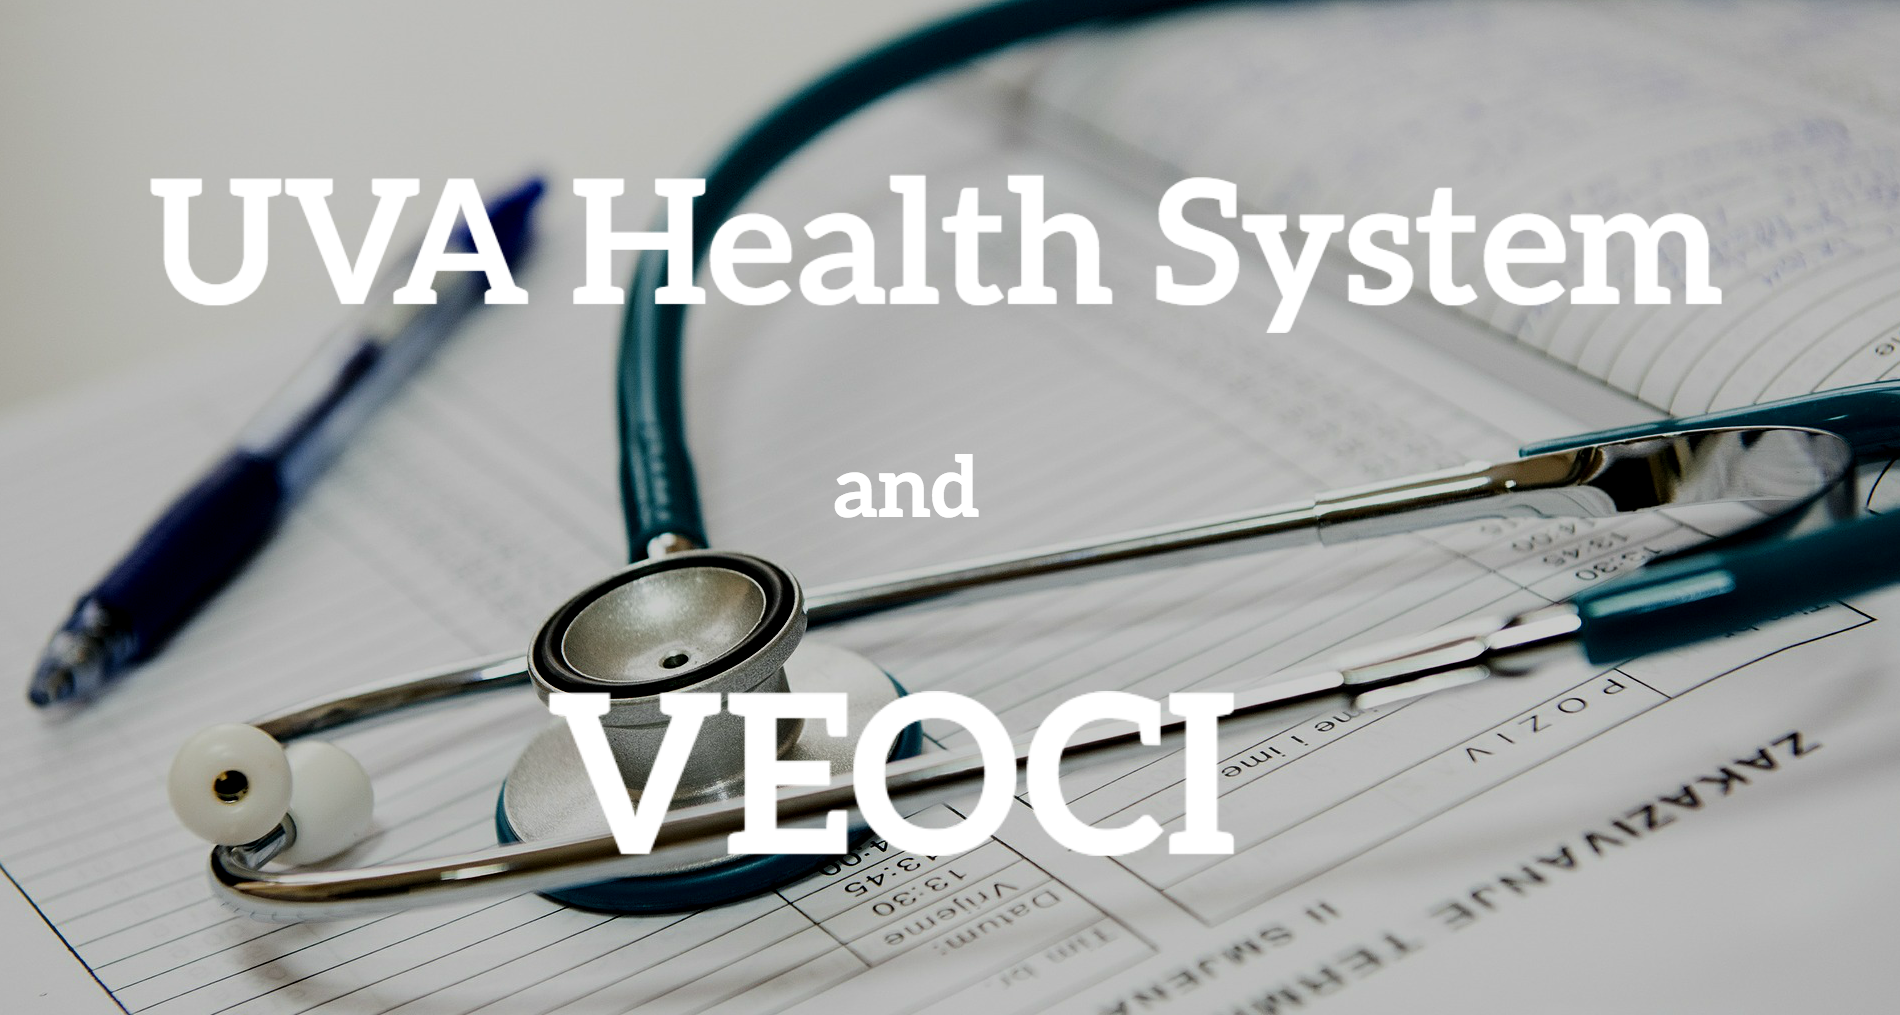 Responding to Civil Unrest using Veoci: UVA Health System's Response to Charlottesville